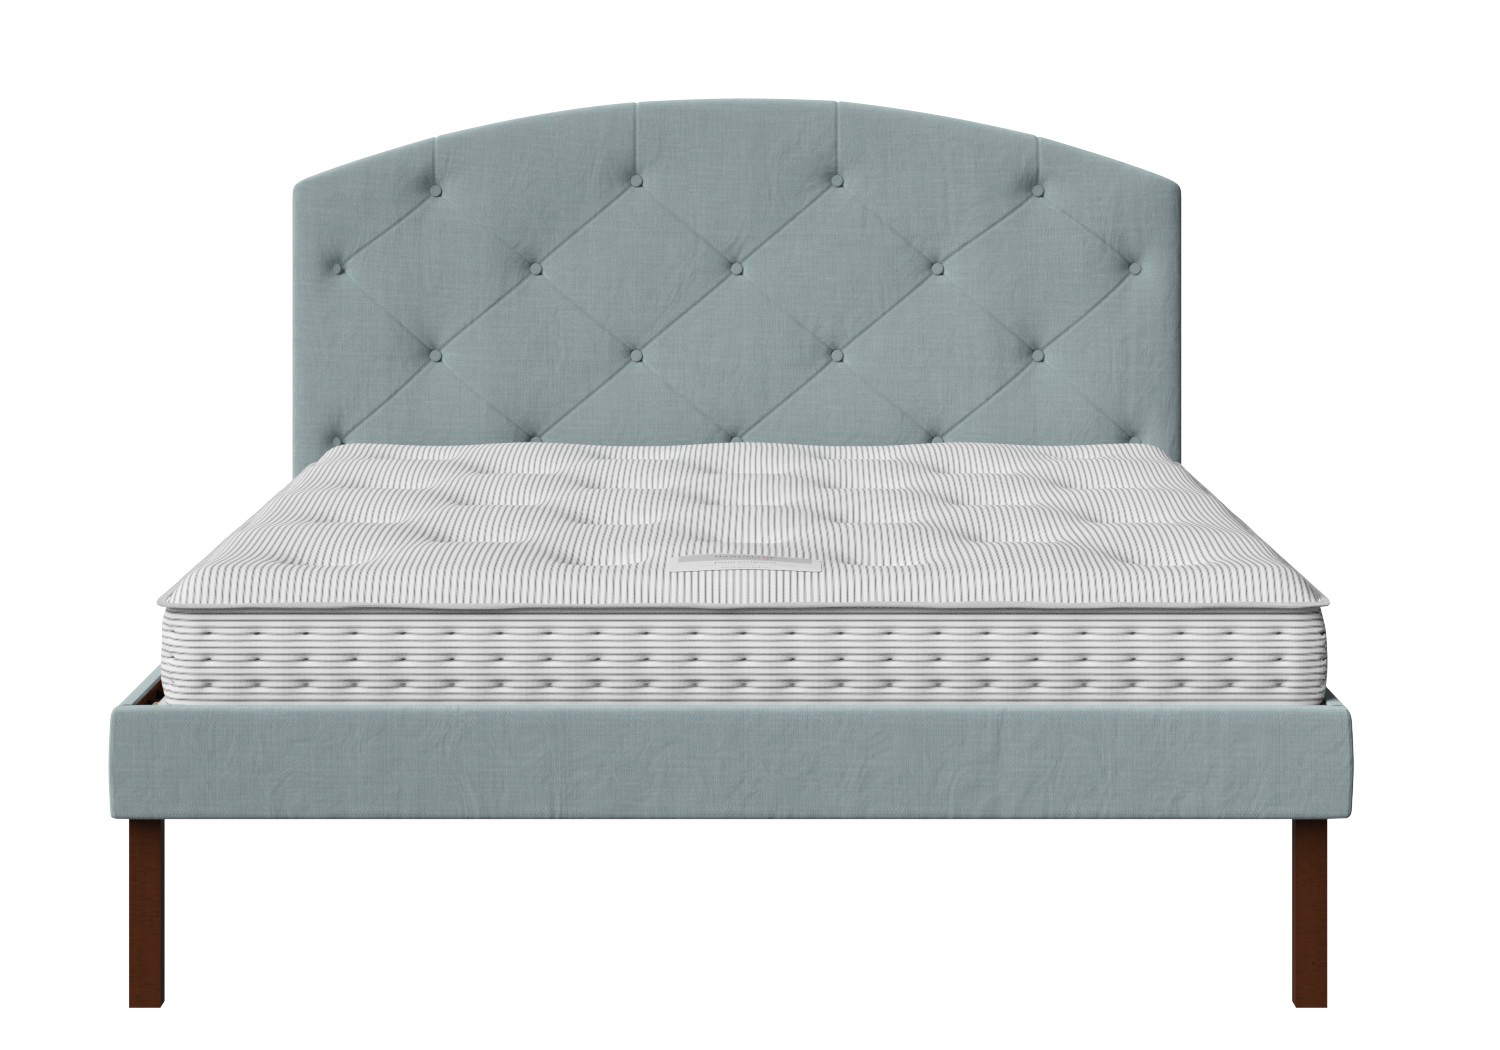 Okawa Upholstered Bed in Wedgewood fabric with buttoning shown with Juno 1 mattress